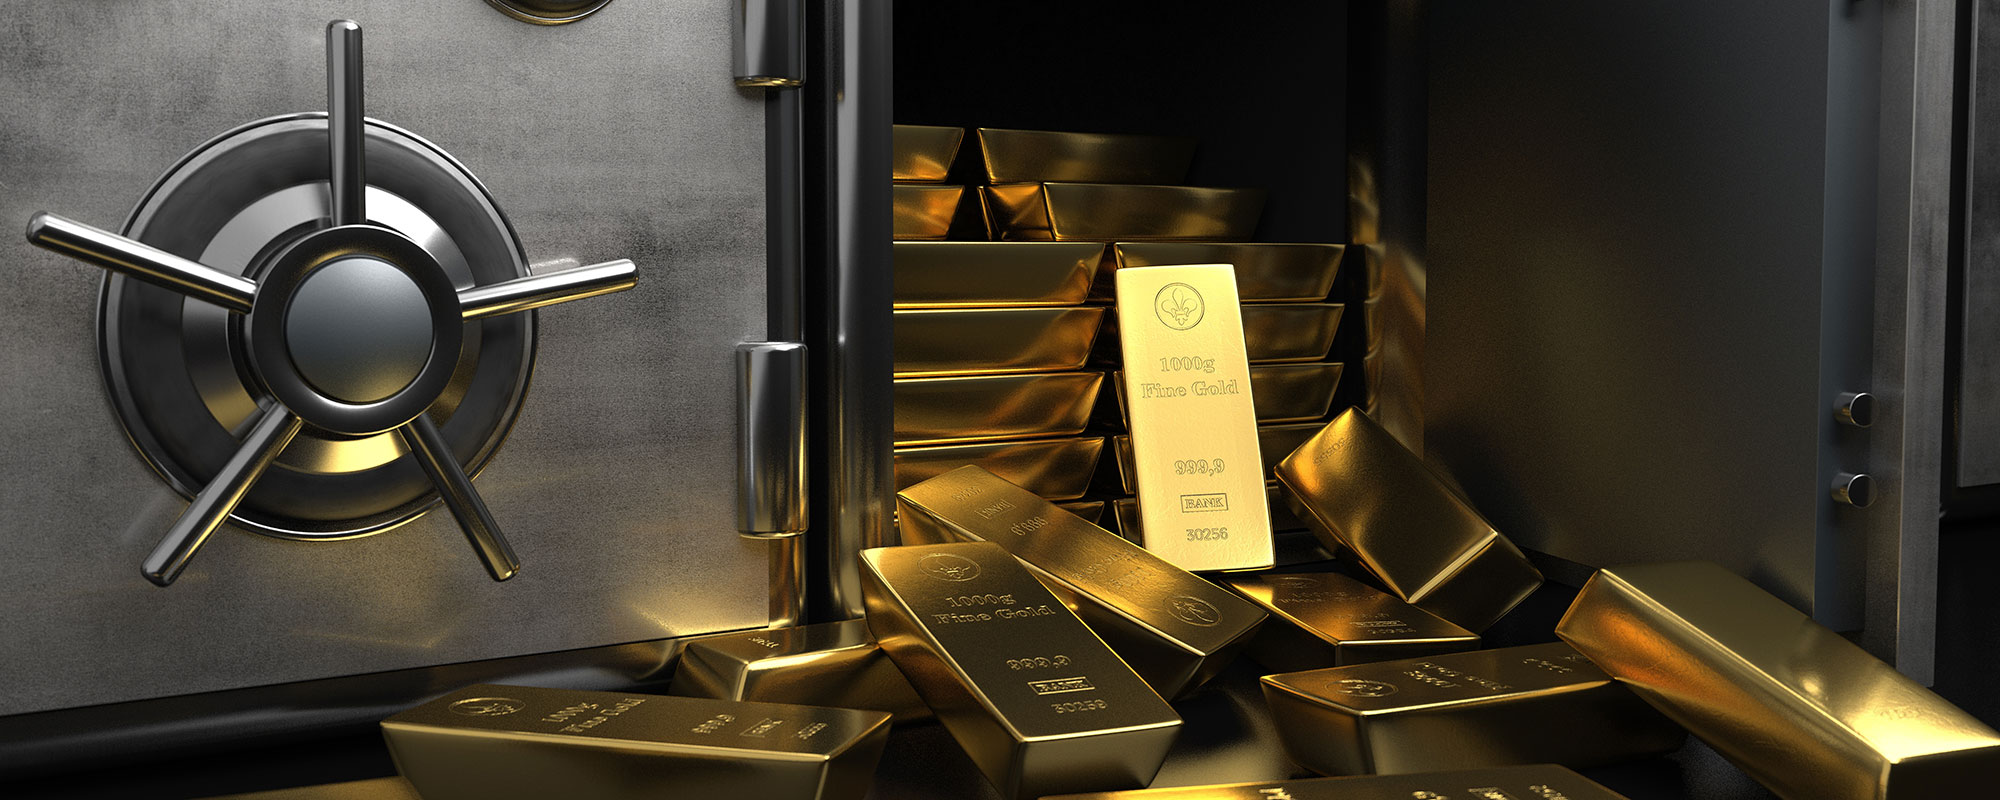 Safe with gold bars